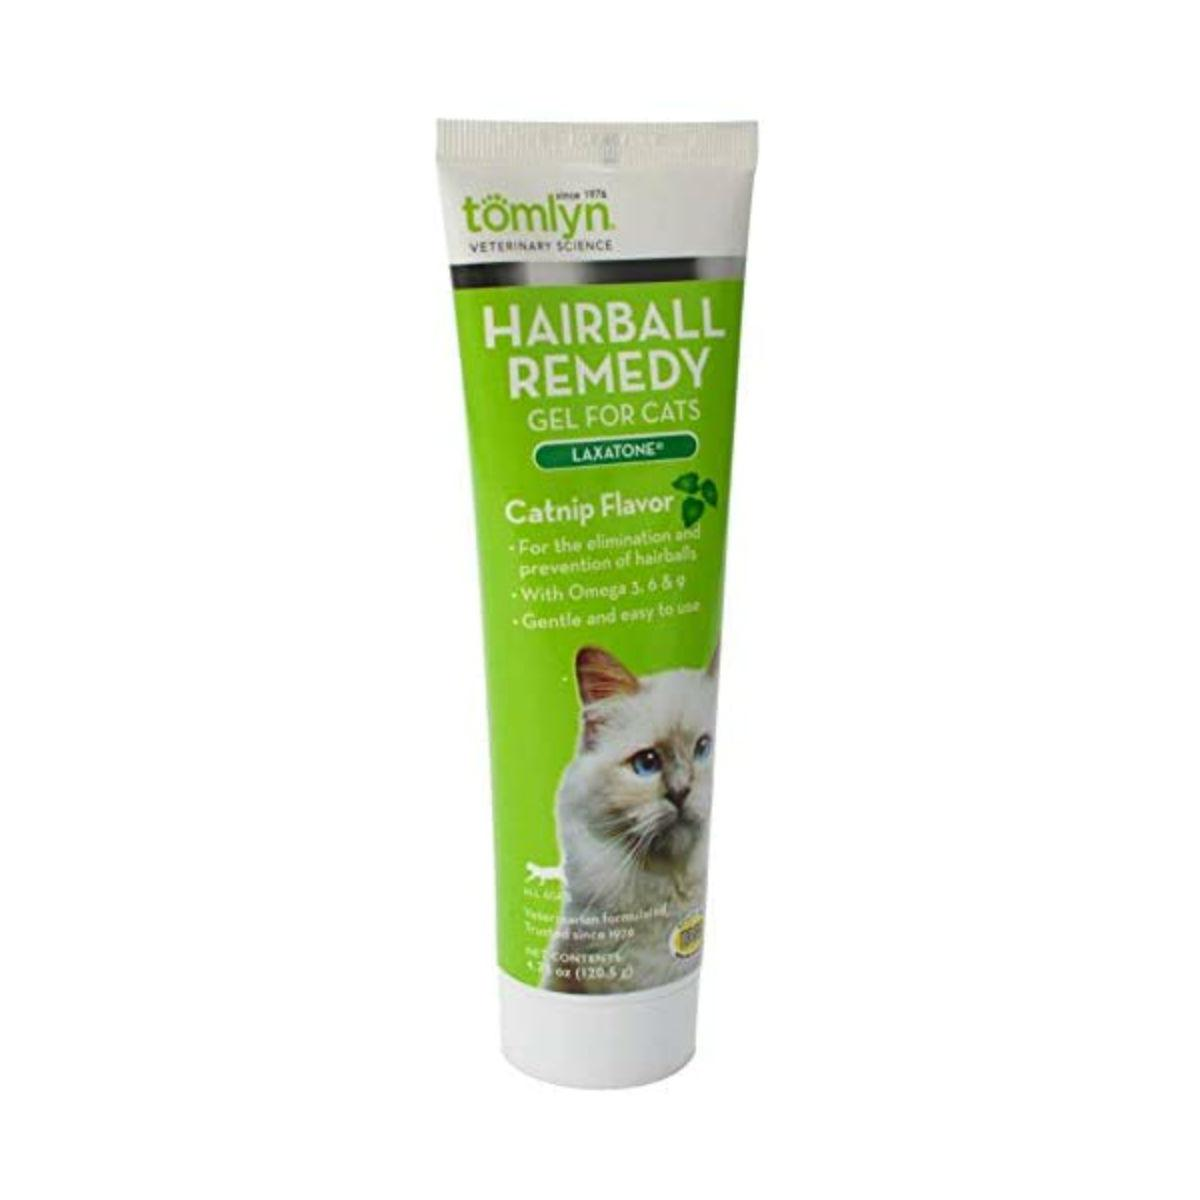 Tomlyn Laxatone Hairball Remedy Gel for Cats - Catnip